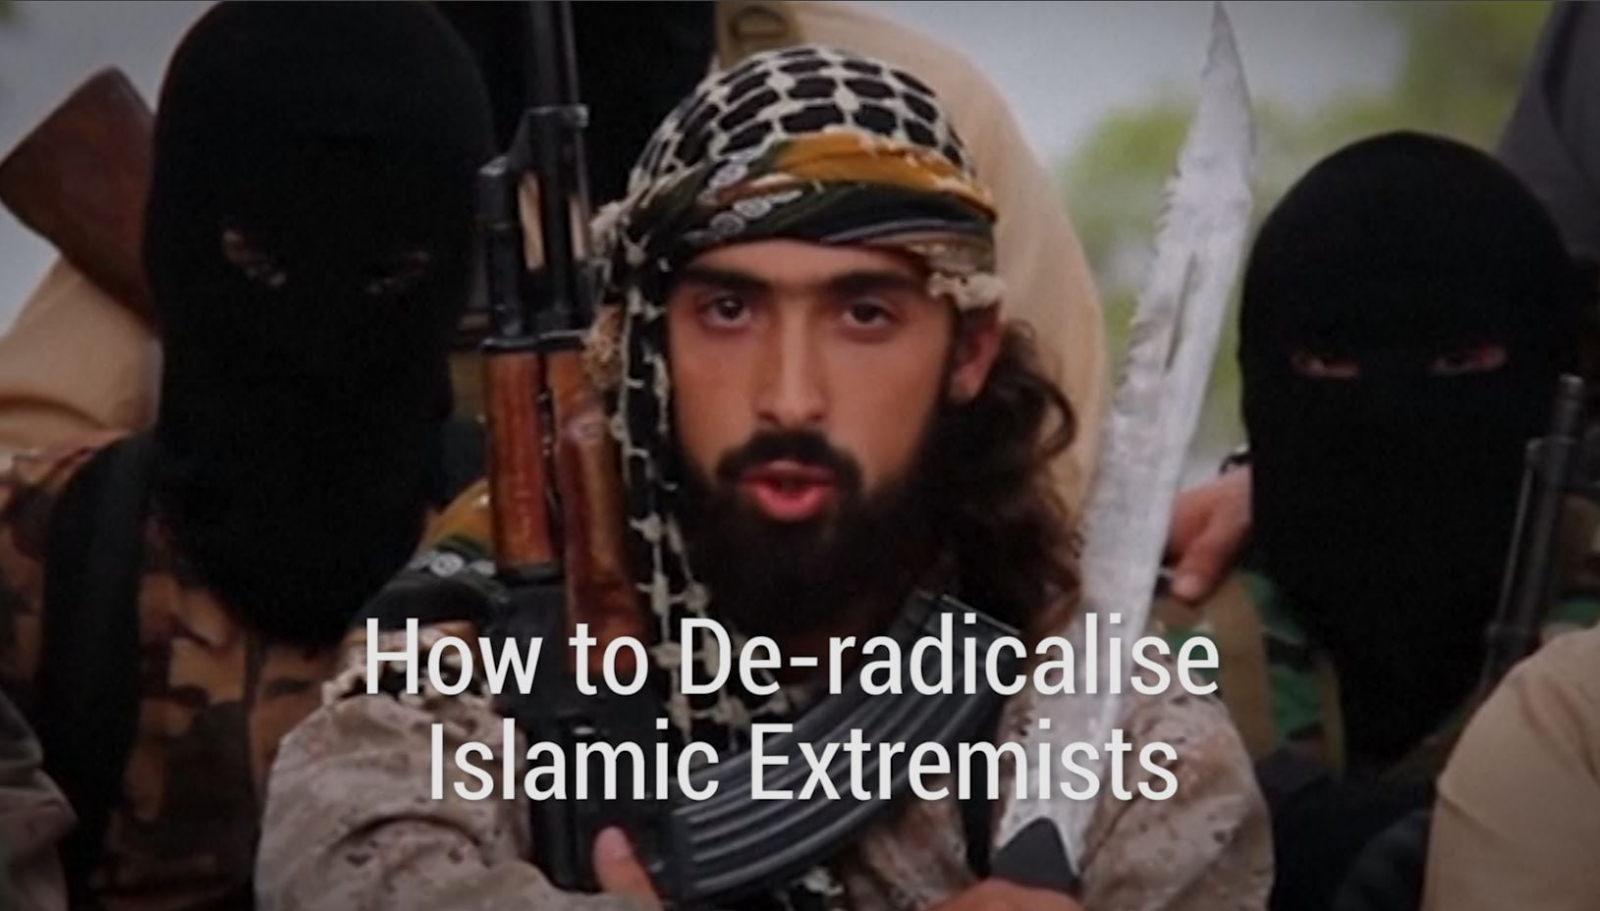 How to De-radicalise Islamic Extremists